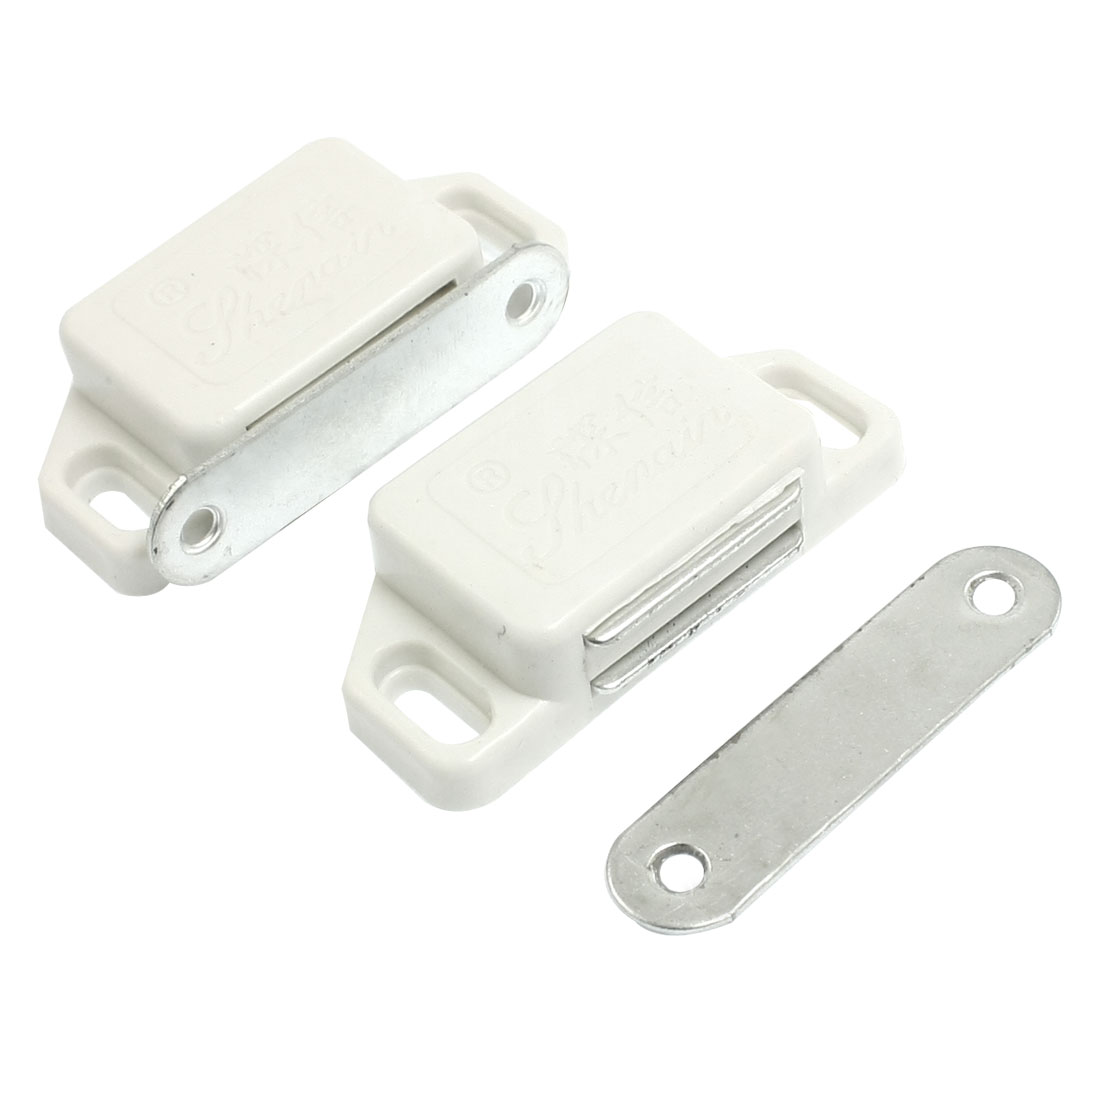 "Cabinet Cupboard Doors Hardware Magnetic Catch Latch 2.2"" 2 Pcs"